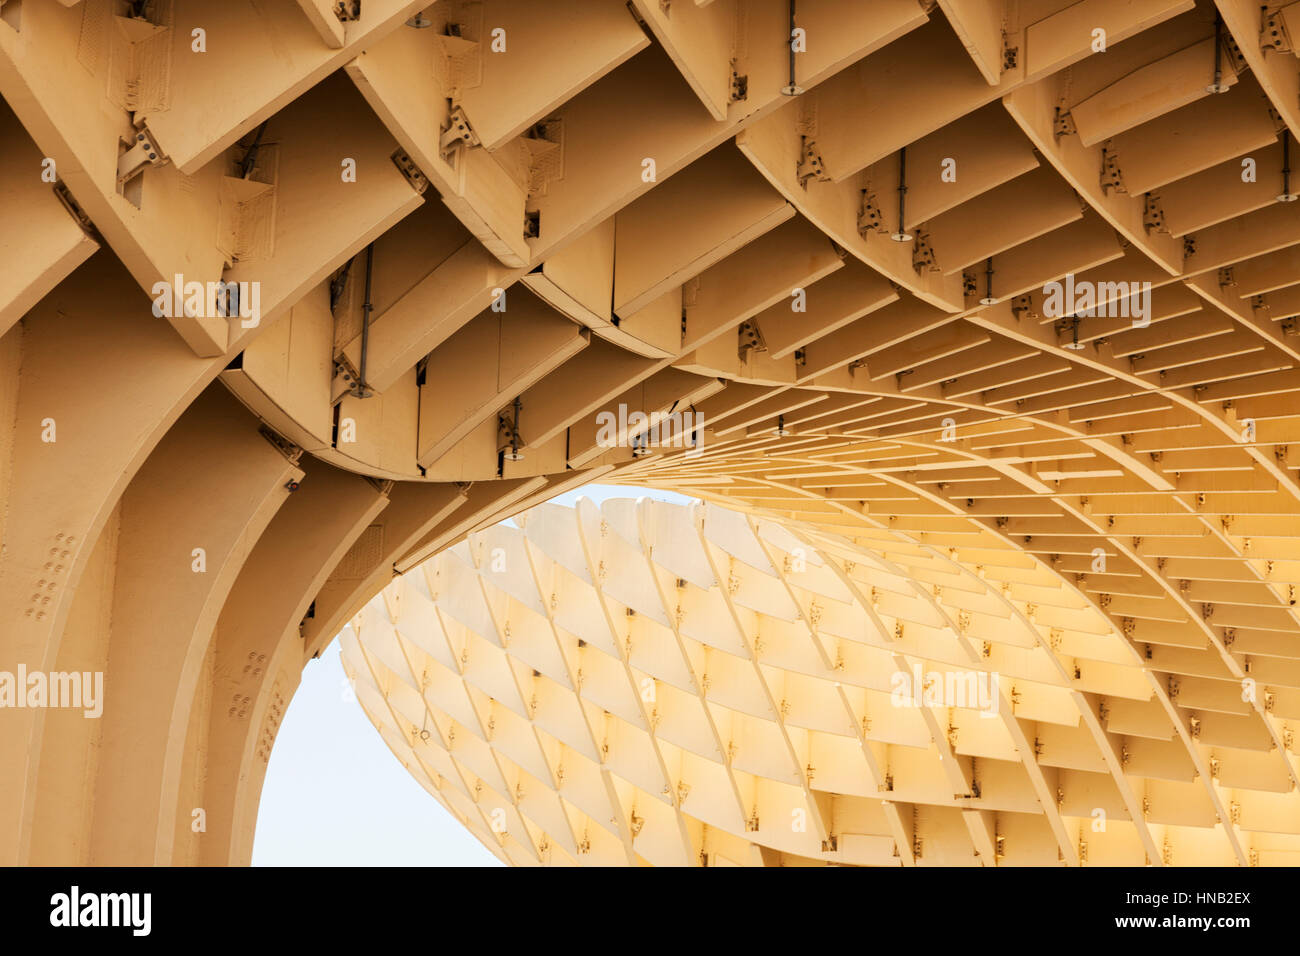 Seville, Spain - May 1, 2016: Detail view of the wooden construction the Metropol Parasol building is made of. - Stock Image